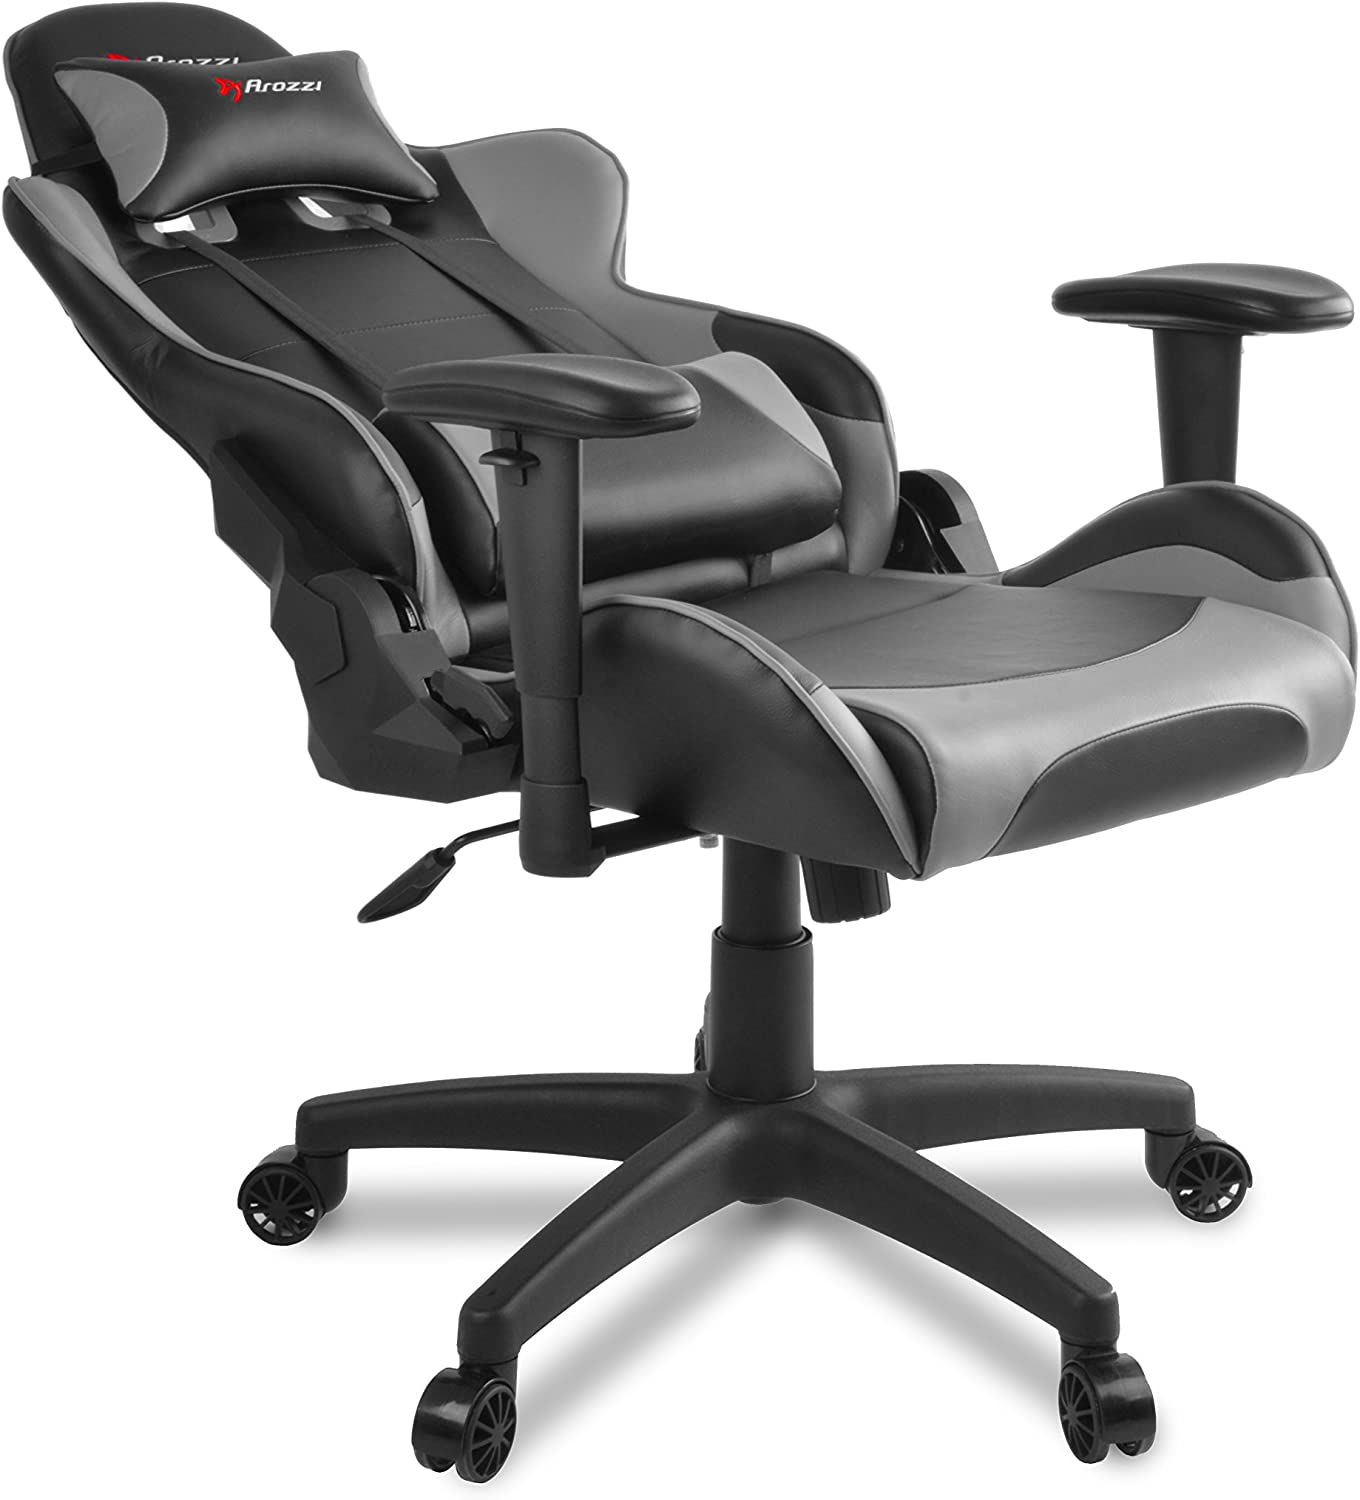 Lumbar and Headrest Pillows Included AROZZI VERONA-V2-BL Advanced Racing Style Gaming Chair with High Backrest Recliner Rocker and Seat Height Adjustment Tilt Swivel Blue